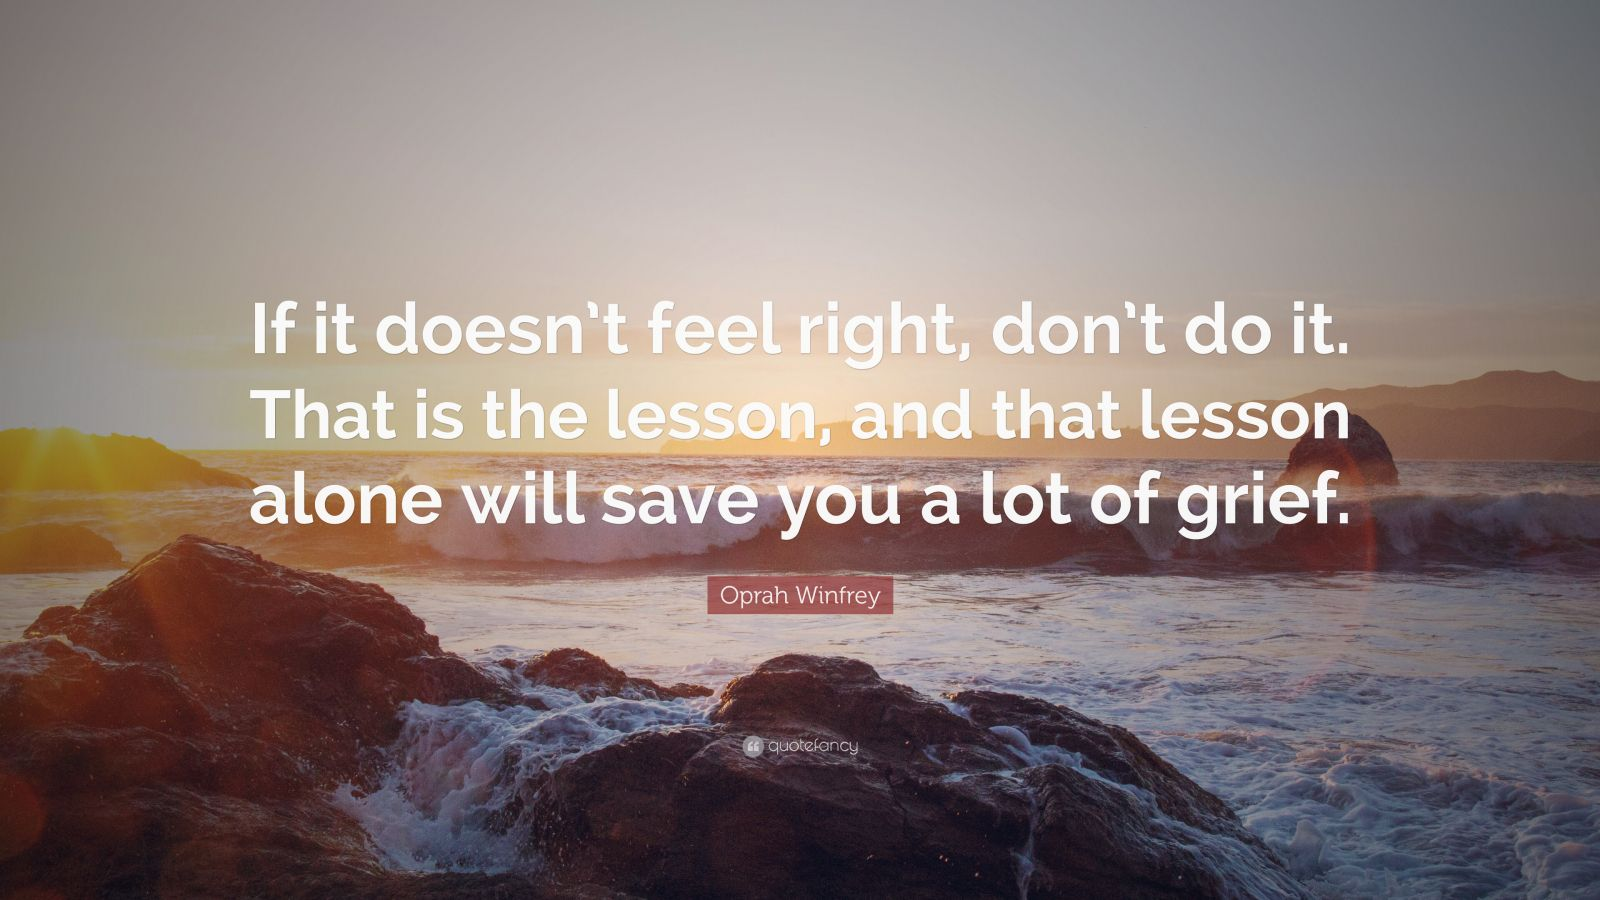 """Oprah Winfrey Quote: """"If it doesn't feel right, don't do it. That is the lesson, and that lesson alone will save you a lot of grief."""""""